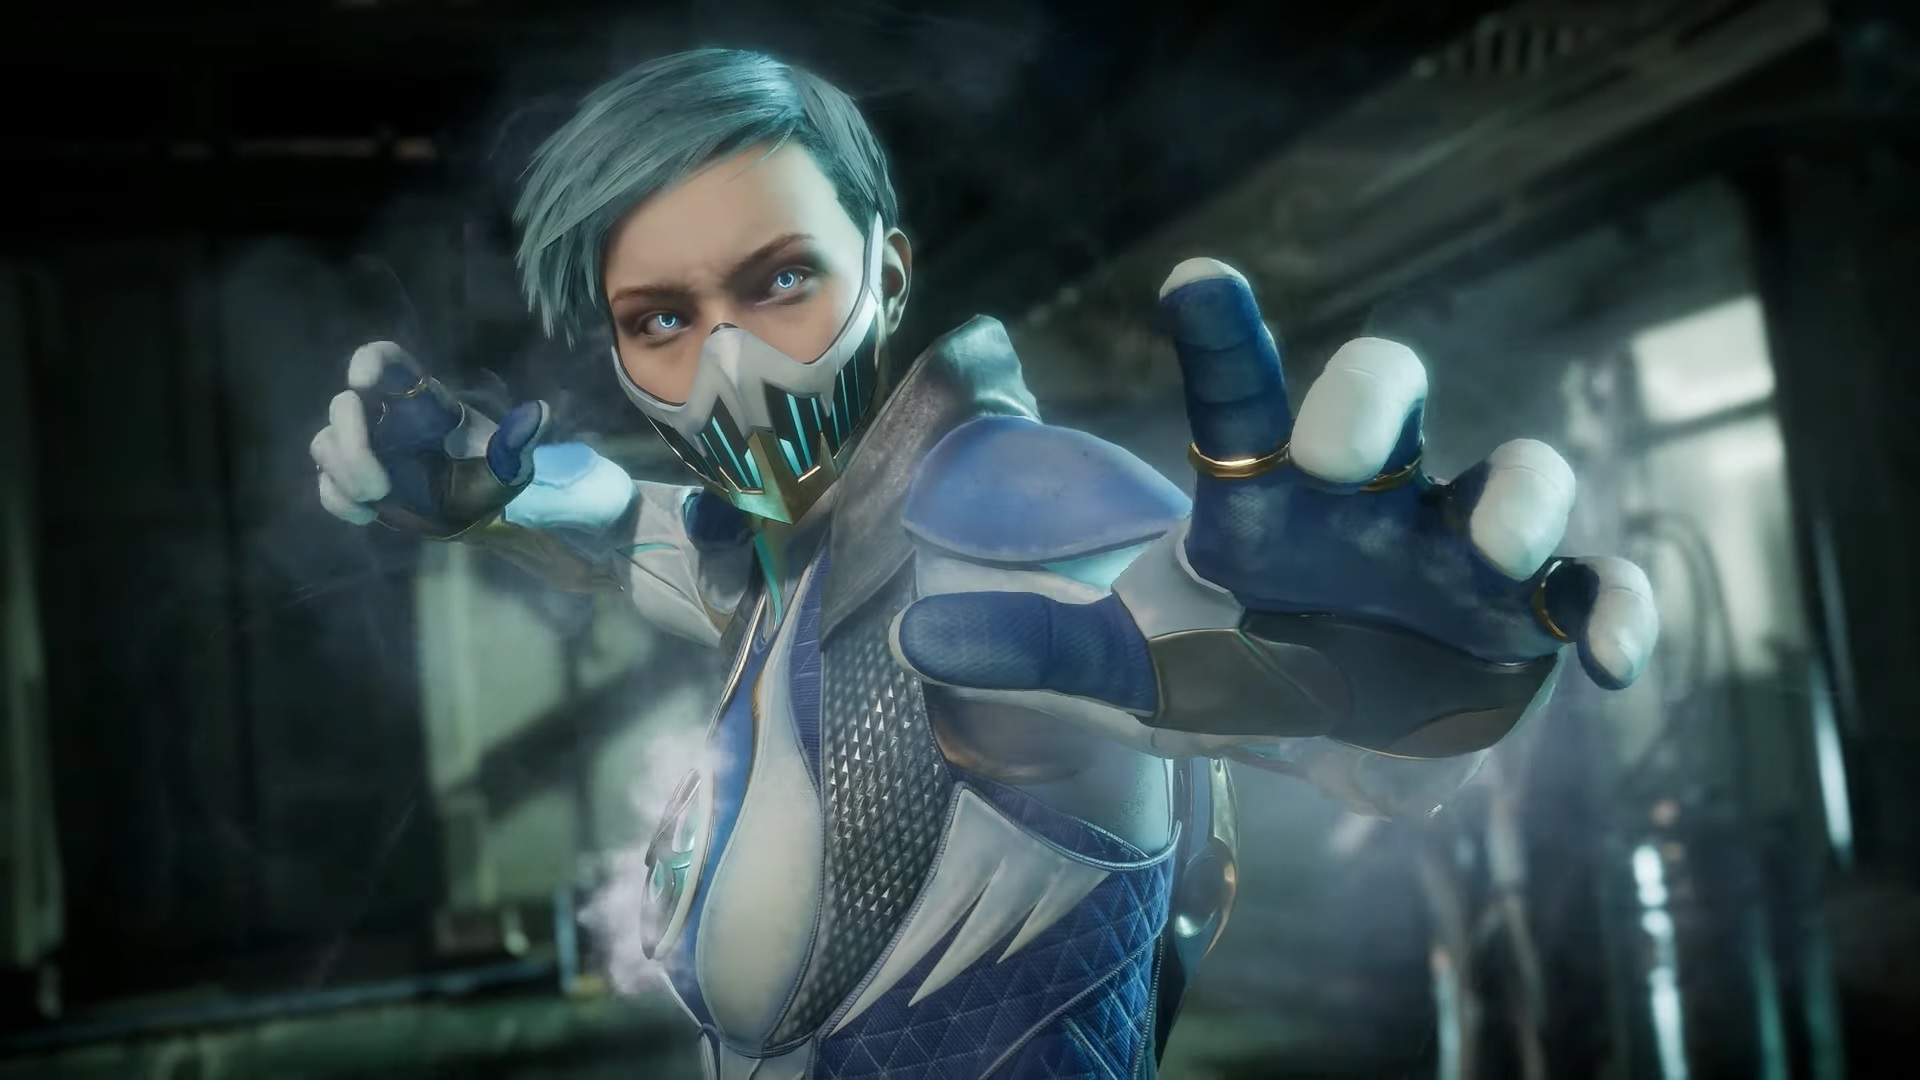 Ice queen Frost will send a chill down your spine in Mortal Kombat 11 screenshot